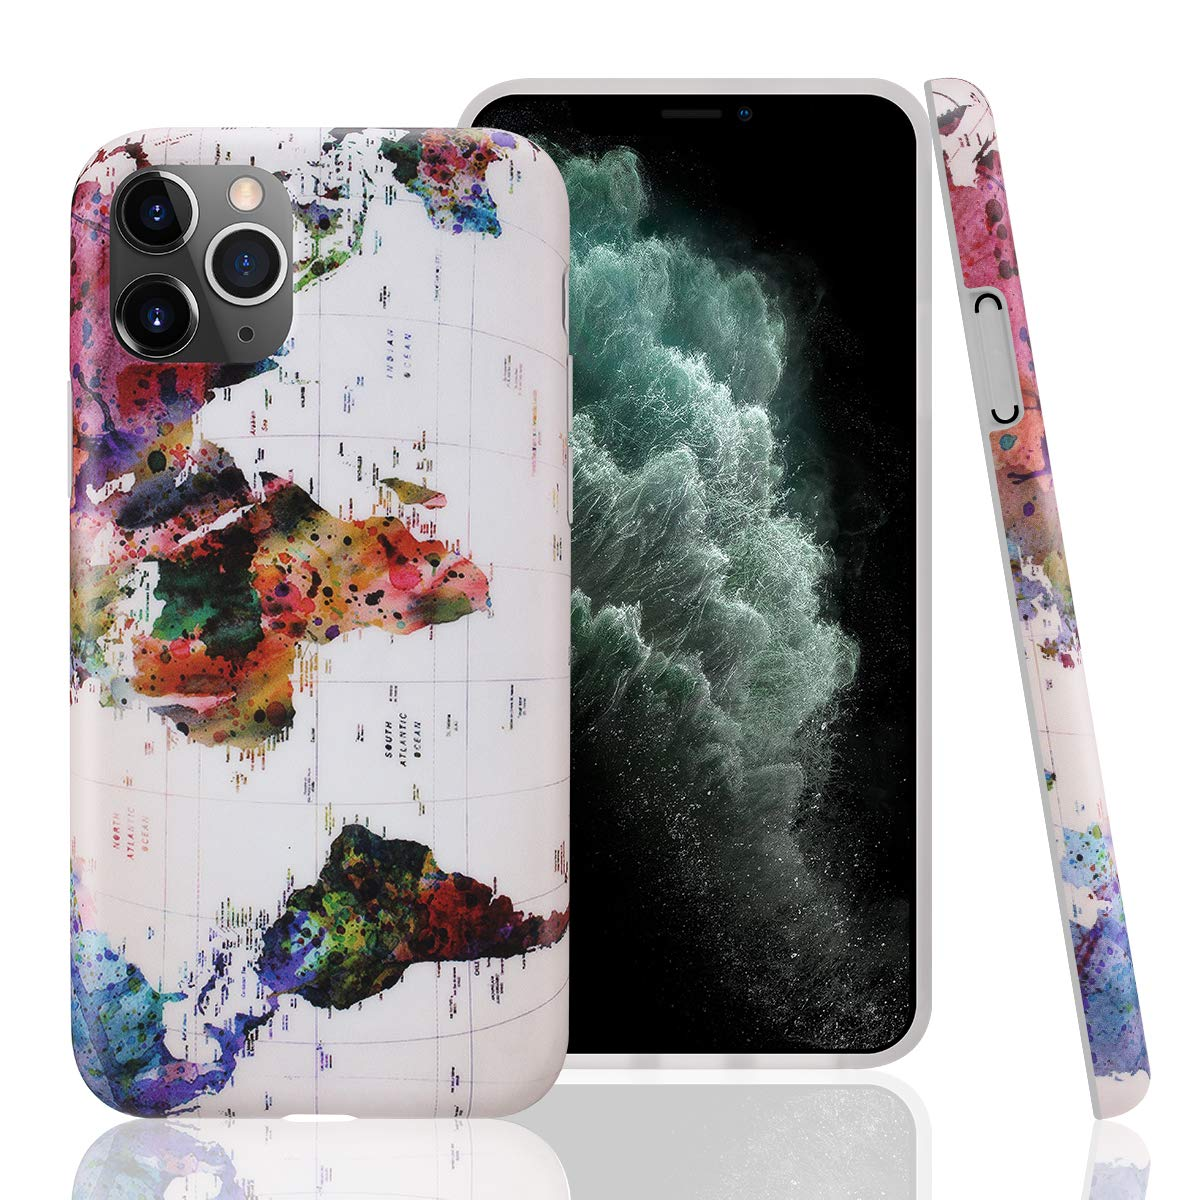 GOLINK Case for iPhone 11 Pro,World Map Slim-Fit Ultra-Thin Anti-Scratch Shock Proof Dust Proof Anti-Finger Print TPU Gel Case for iPhone XI Pro 5.8 inch(2019 Release)-Map